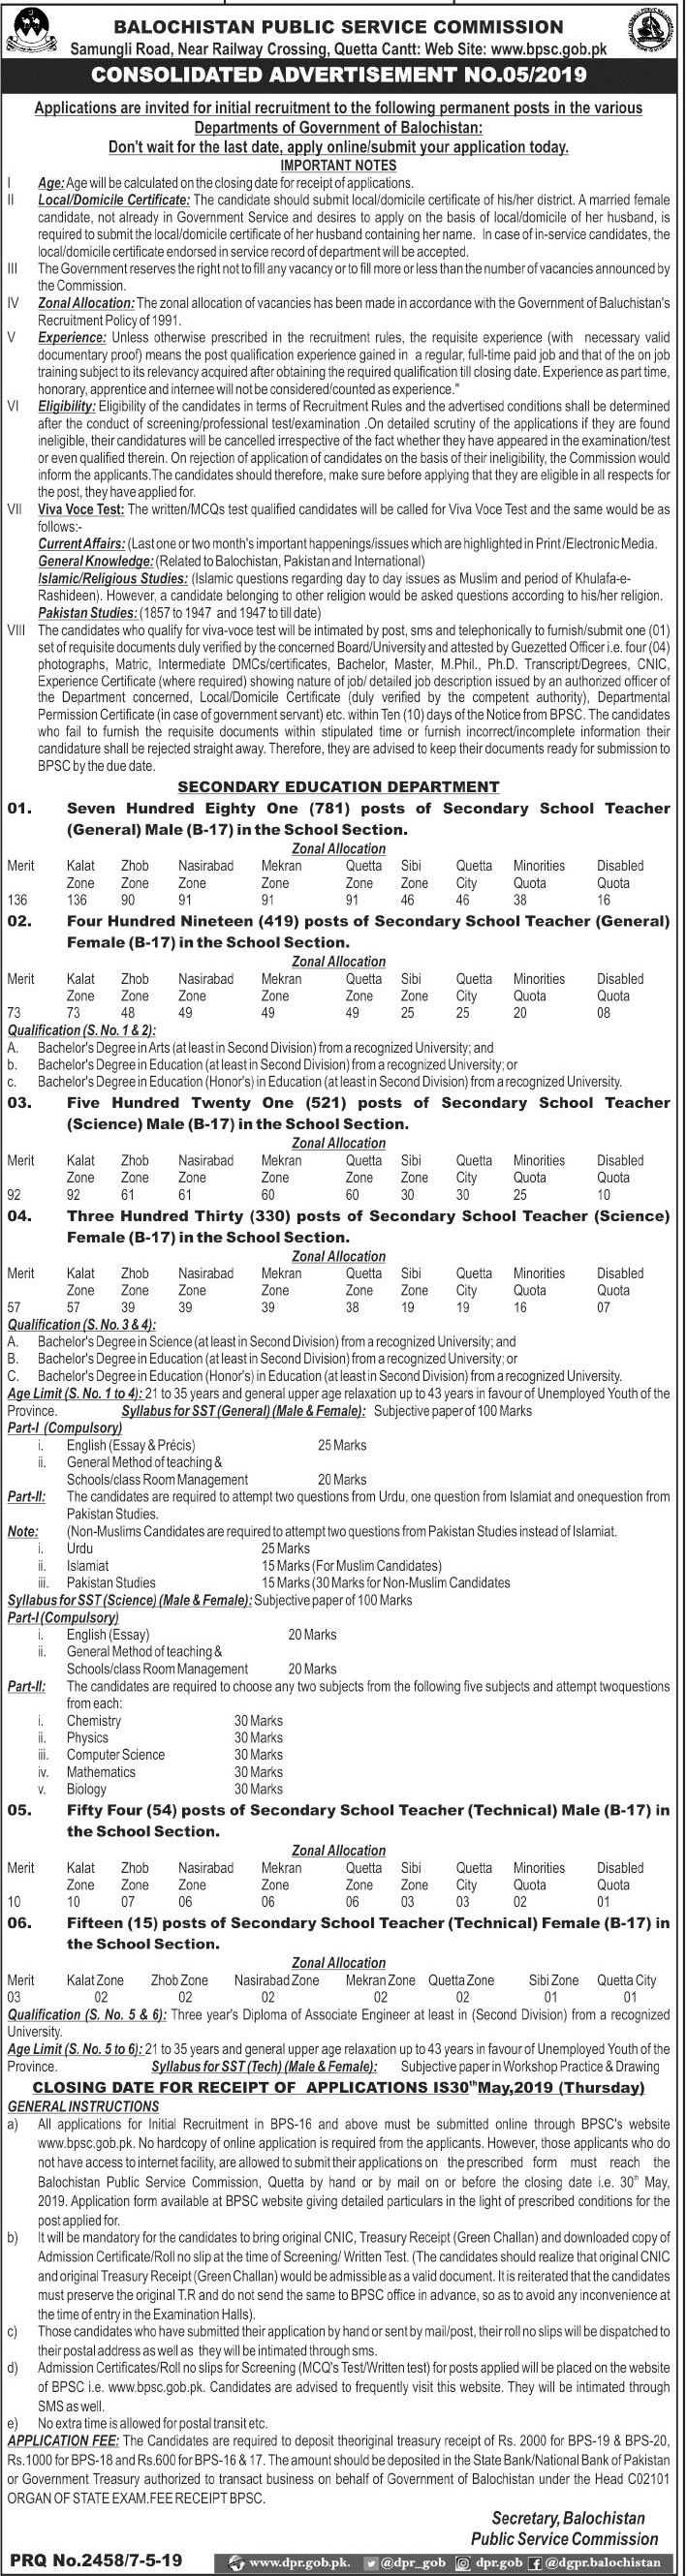 Balochistan Public Service Commission (BPSC) Advertisement No 05-2019 Jobs